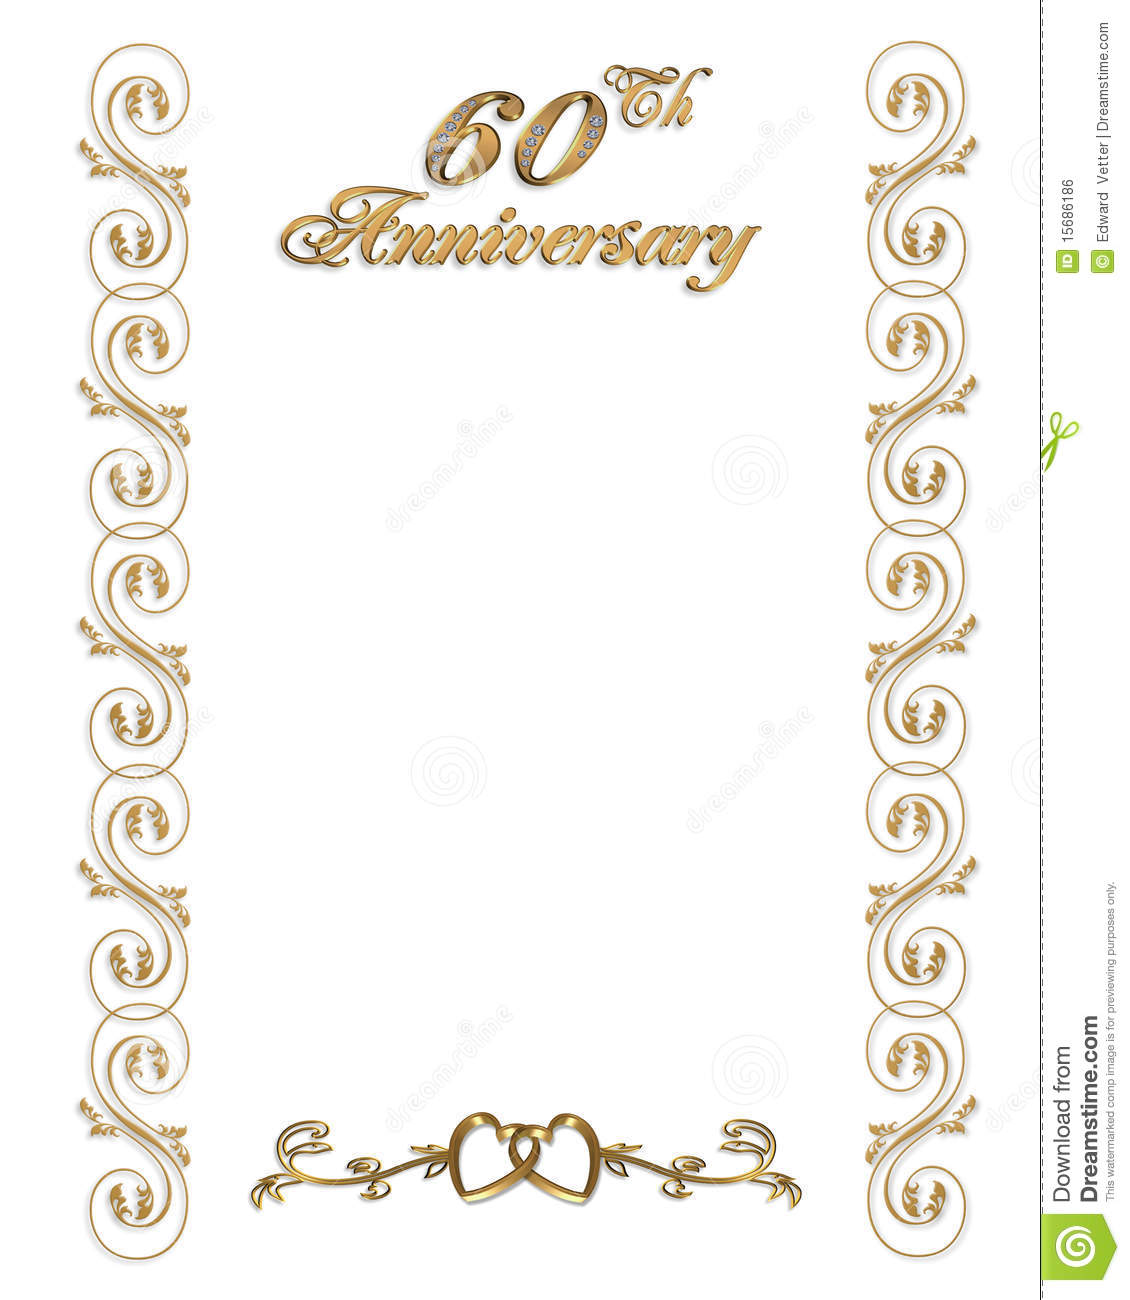 60th anniversary invitation border stock illustration 60th anniversary invitation border stopboris Gallery